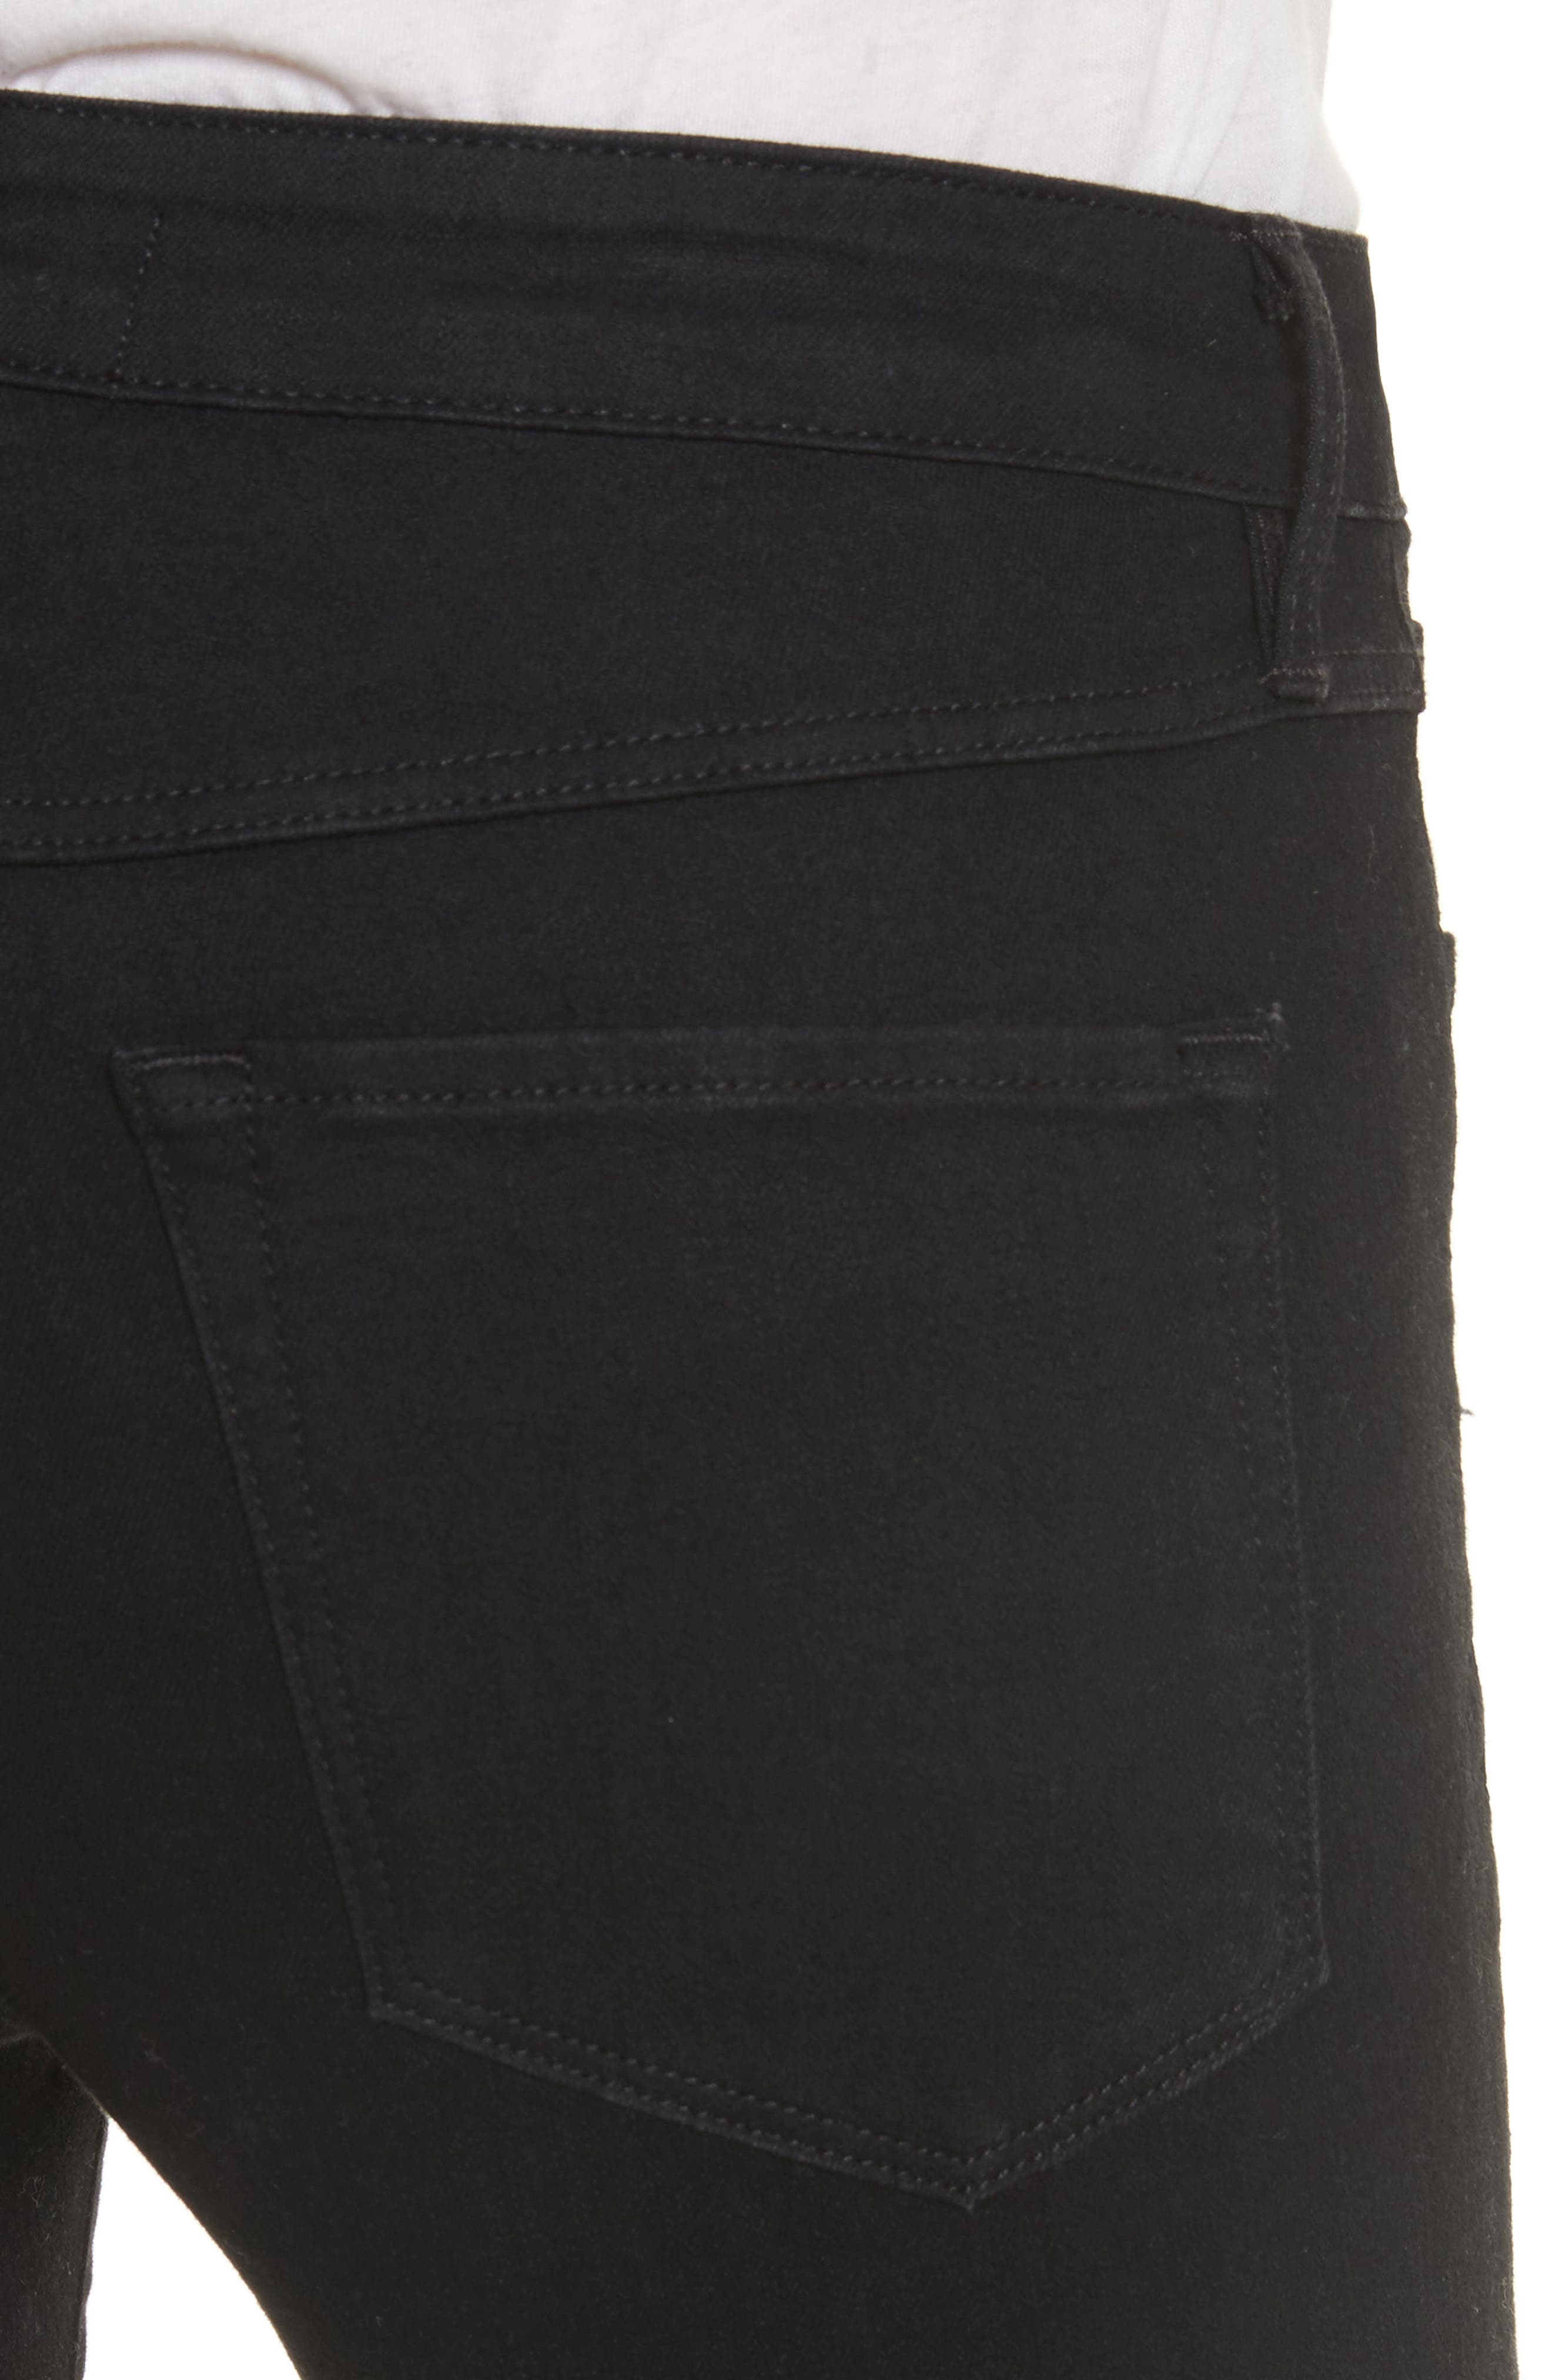 W2 Crop Skinny Jeans,                             Alternate thumbnail 4, color,                             BLACK TEAR